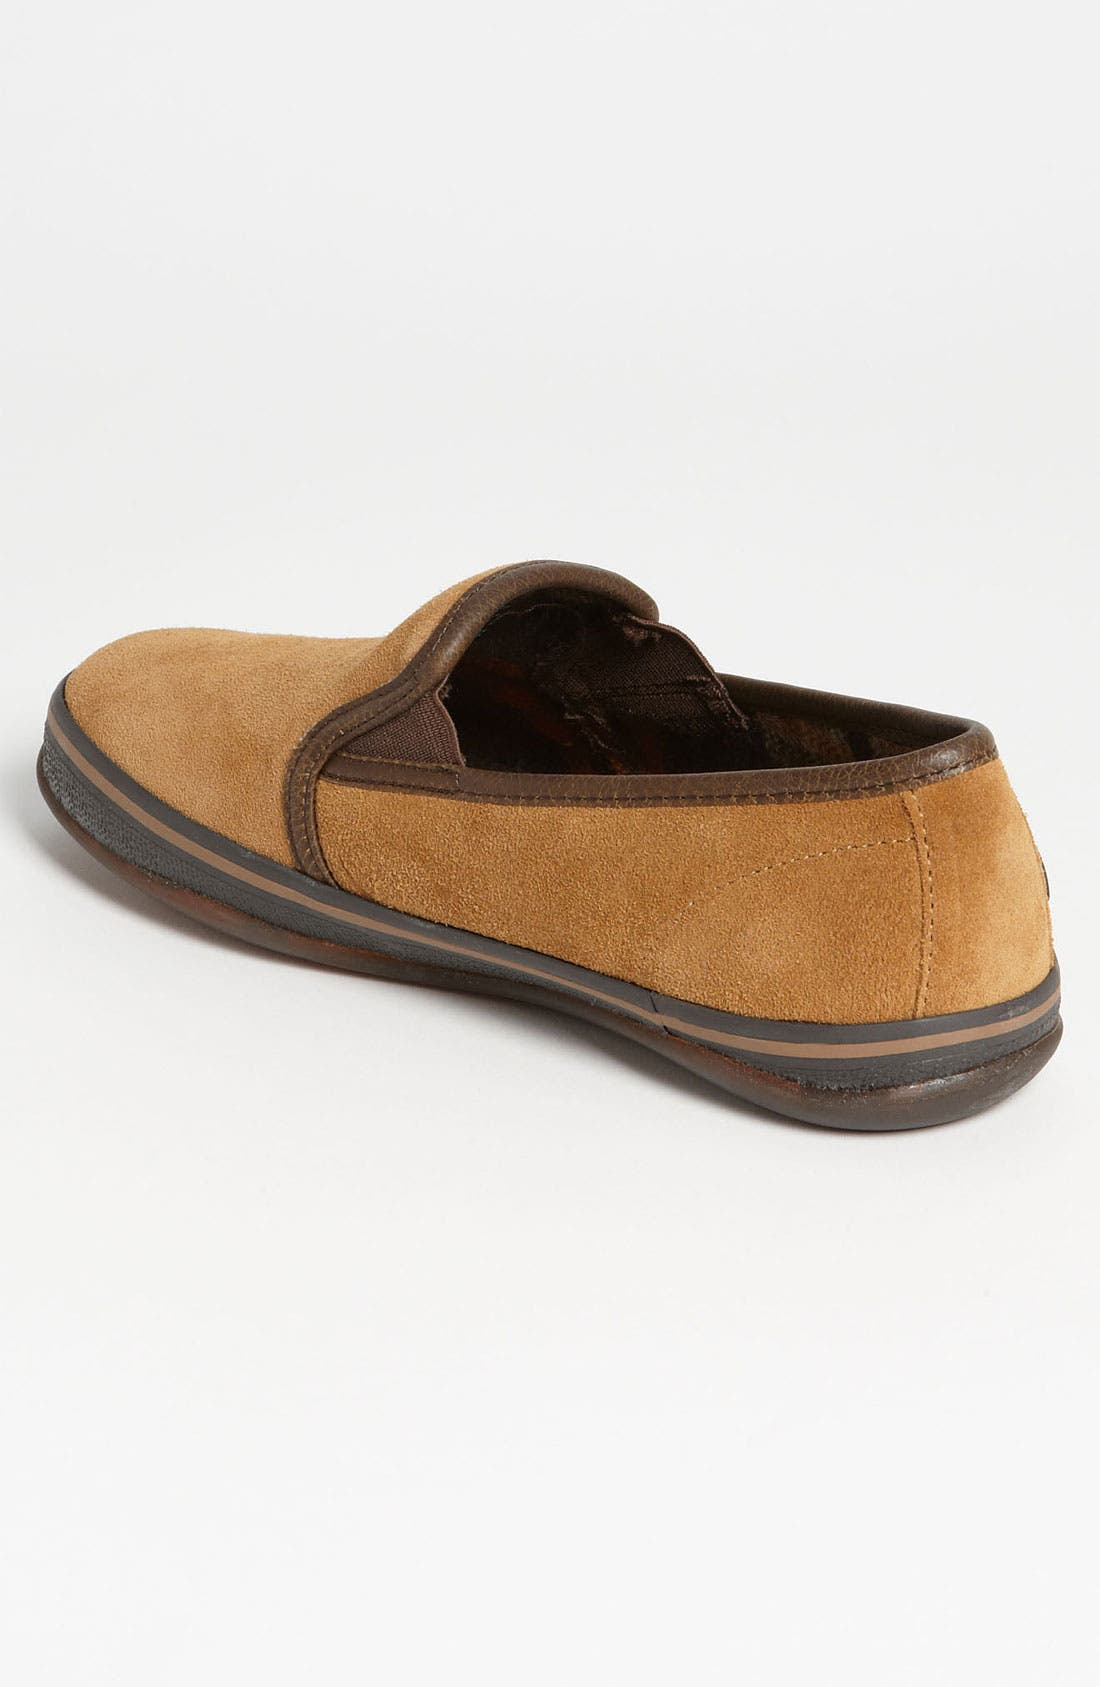 Alternate Image 2  - Woolrich 'Tanglewood' Slipper (Online Only)